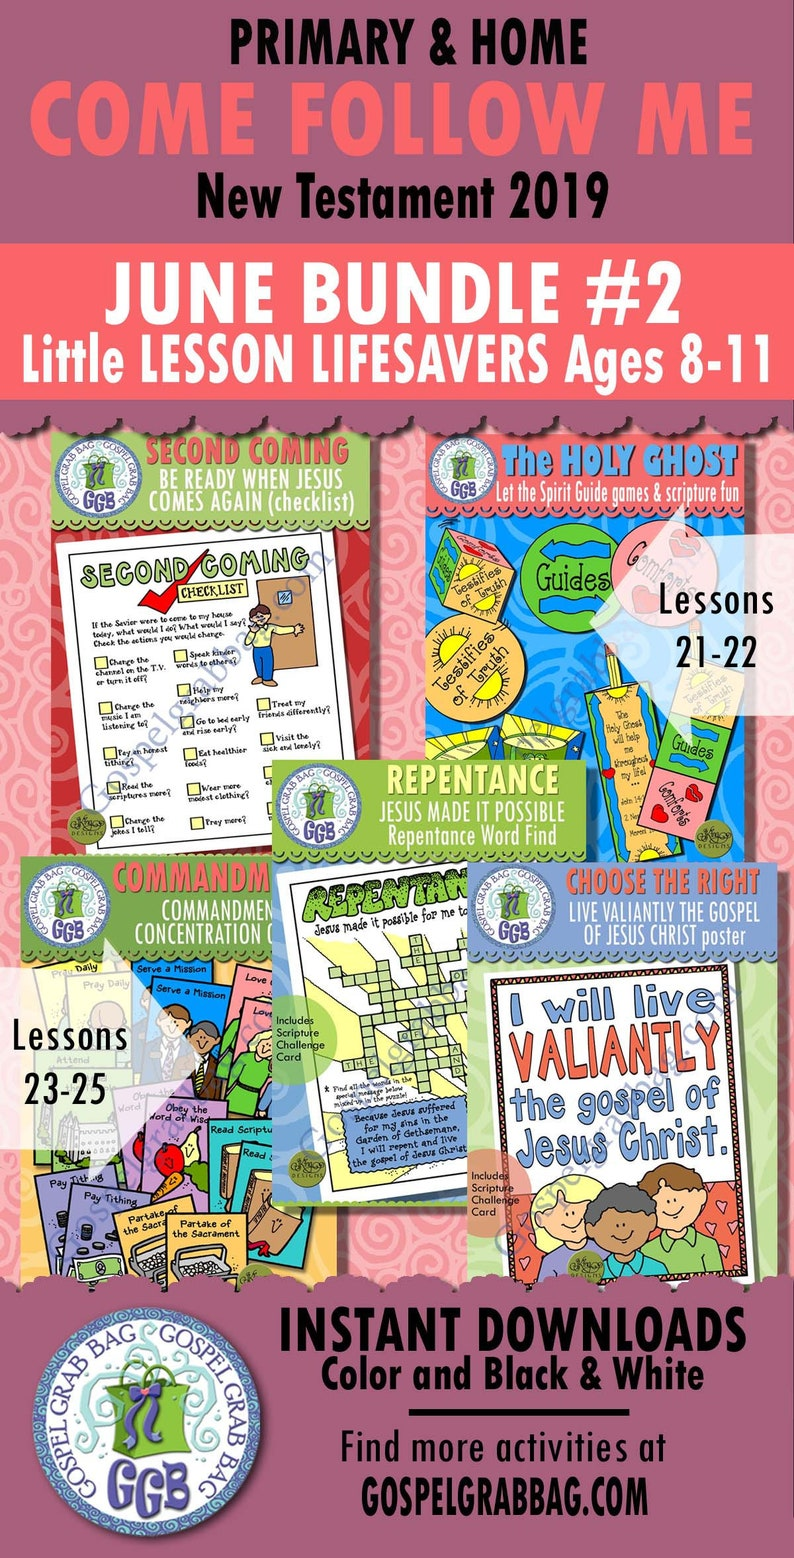 2019 JUNE Ages 8-11 Come Follow Me Lesson 21-25 Bundle 2 Primary-Home  Activities: Second Coming, Holy Ghost, Commandments, Repentance, CTR